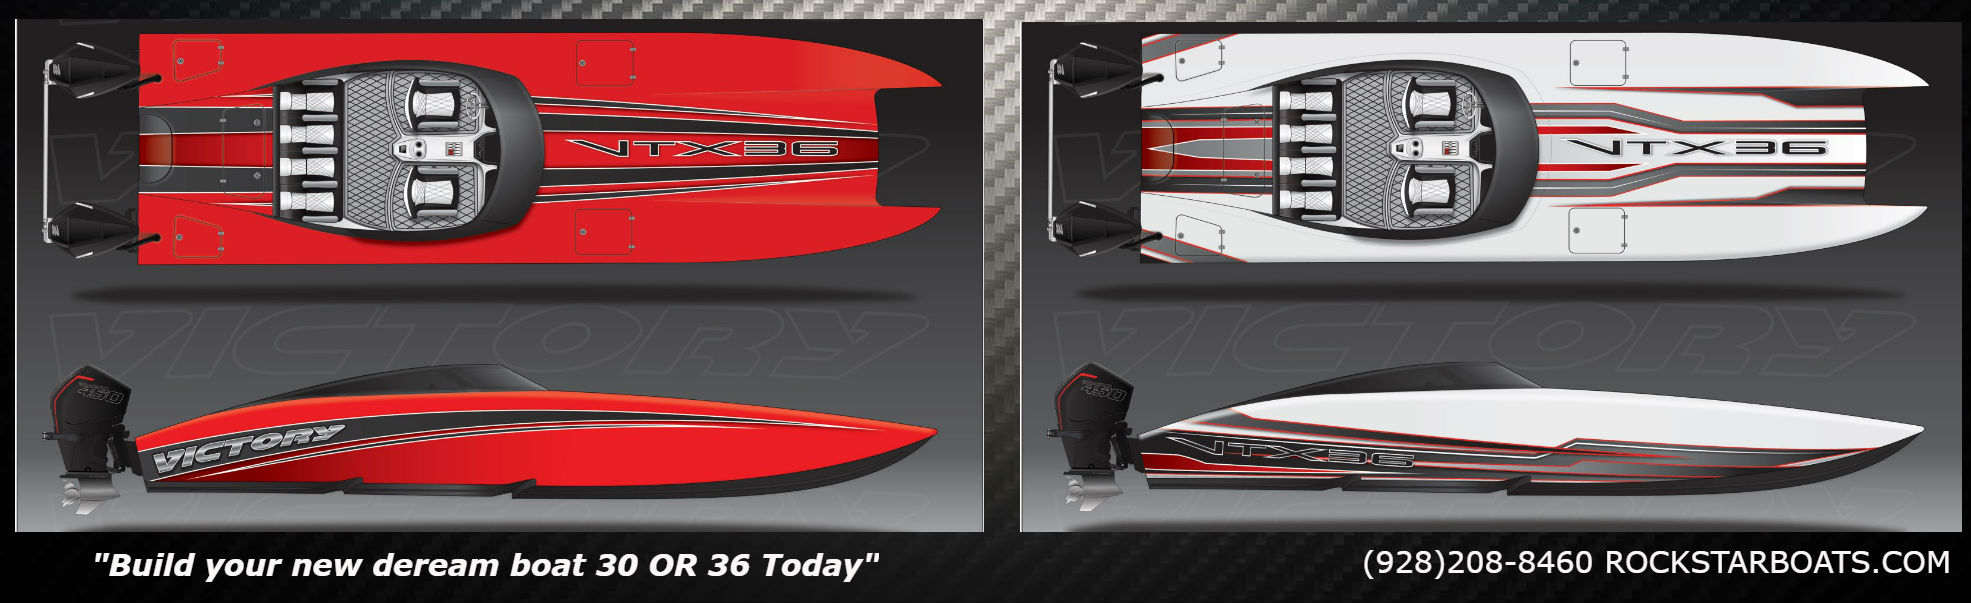 Victory powerboats rockstarboats